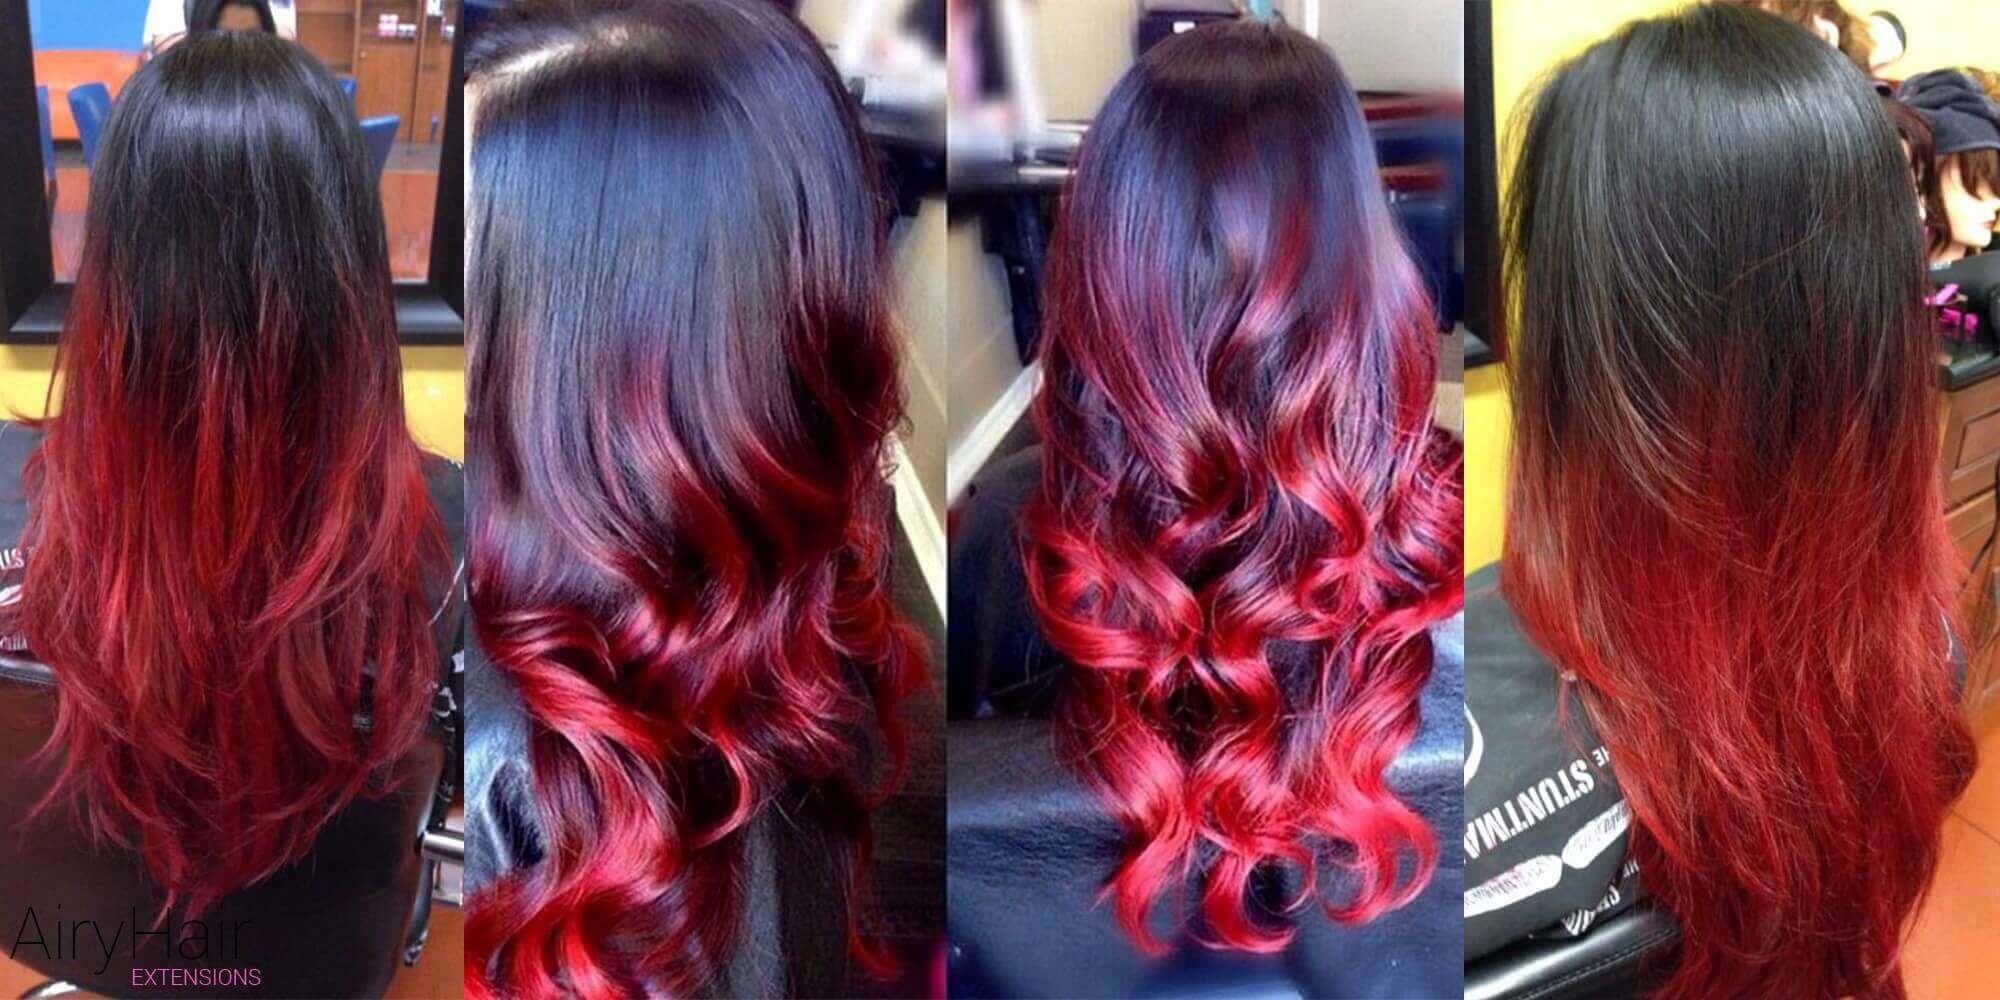 10 Stunning Black Ombr 233 Hairstyles With Hair Extensions